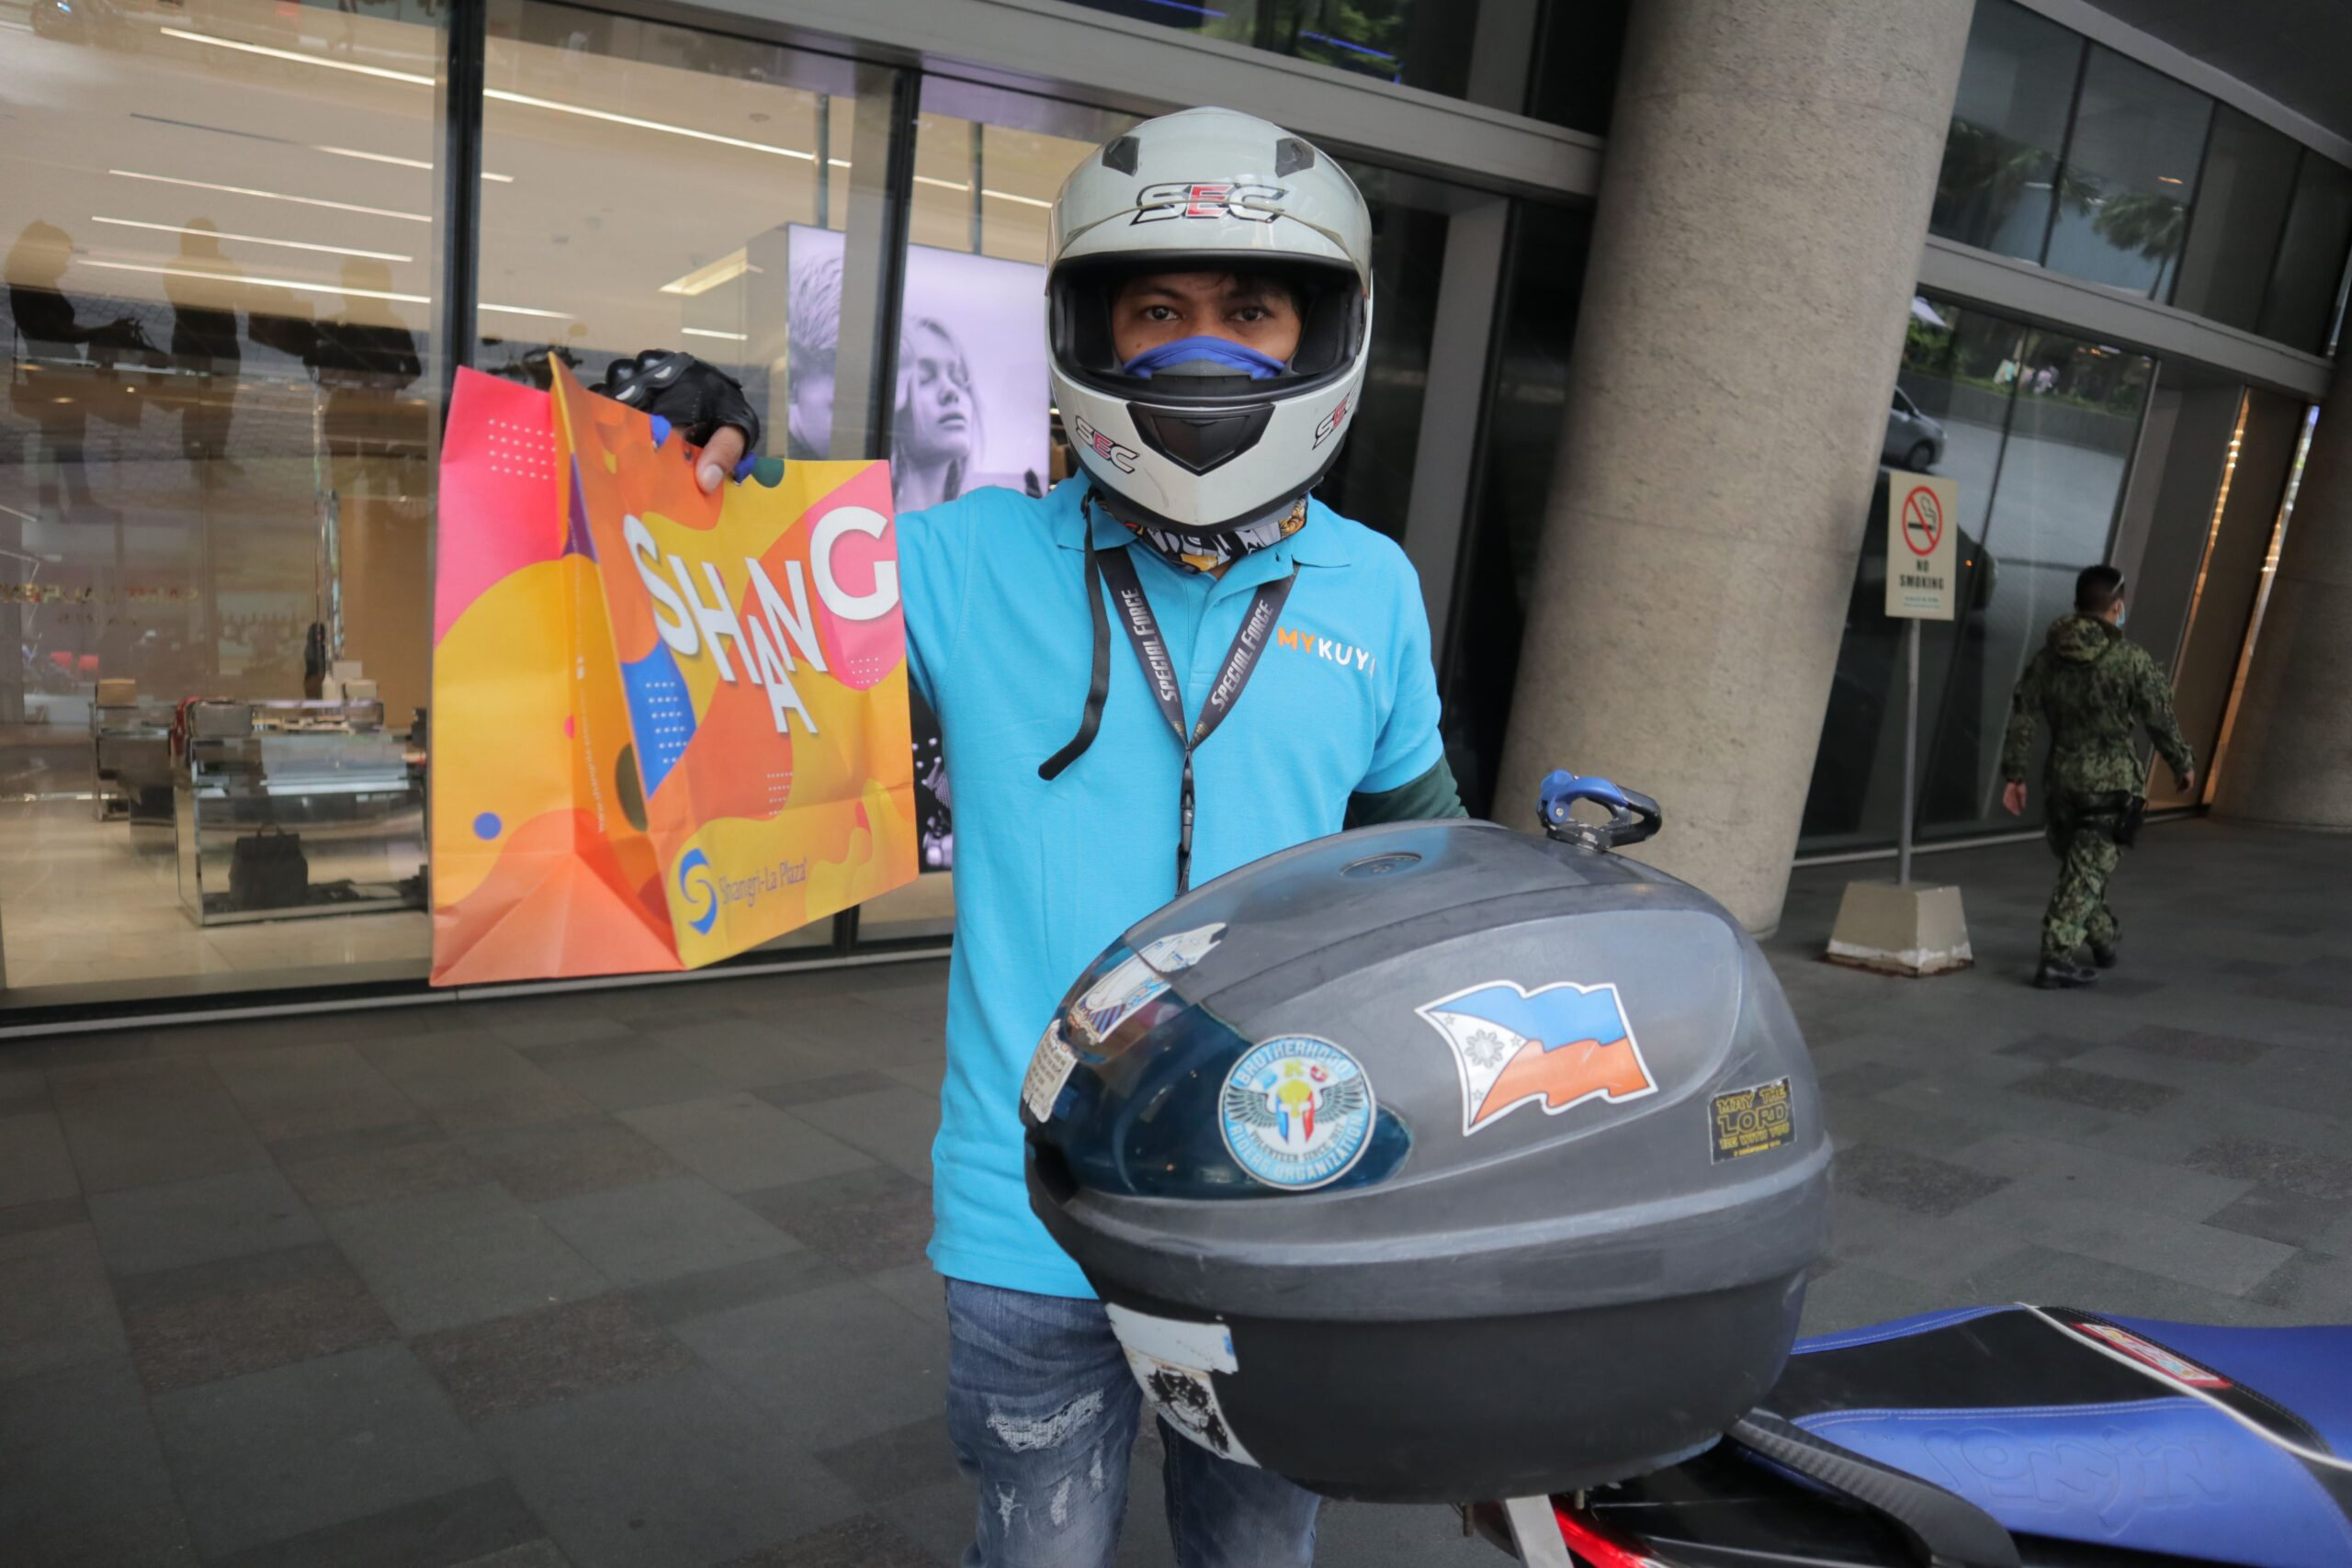 Shang Delivery MyKuya Driver